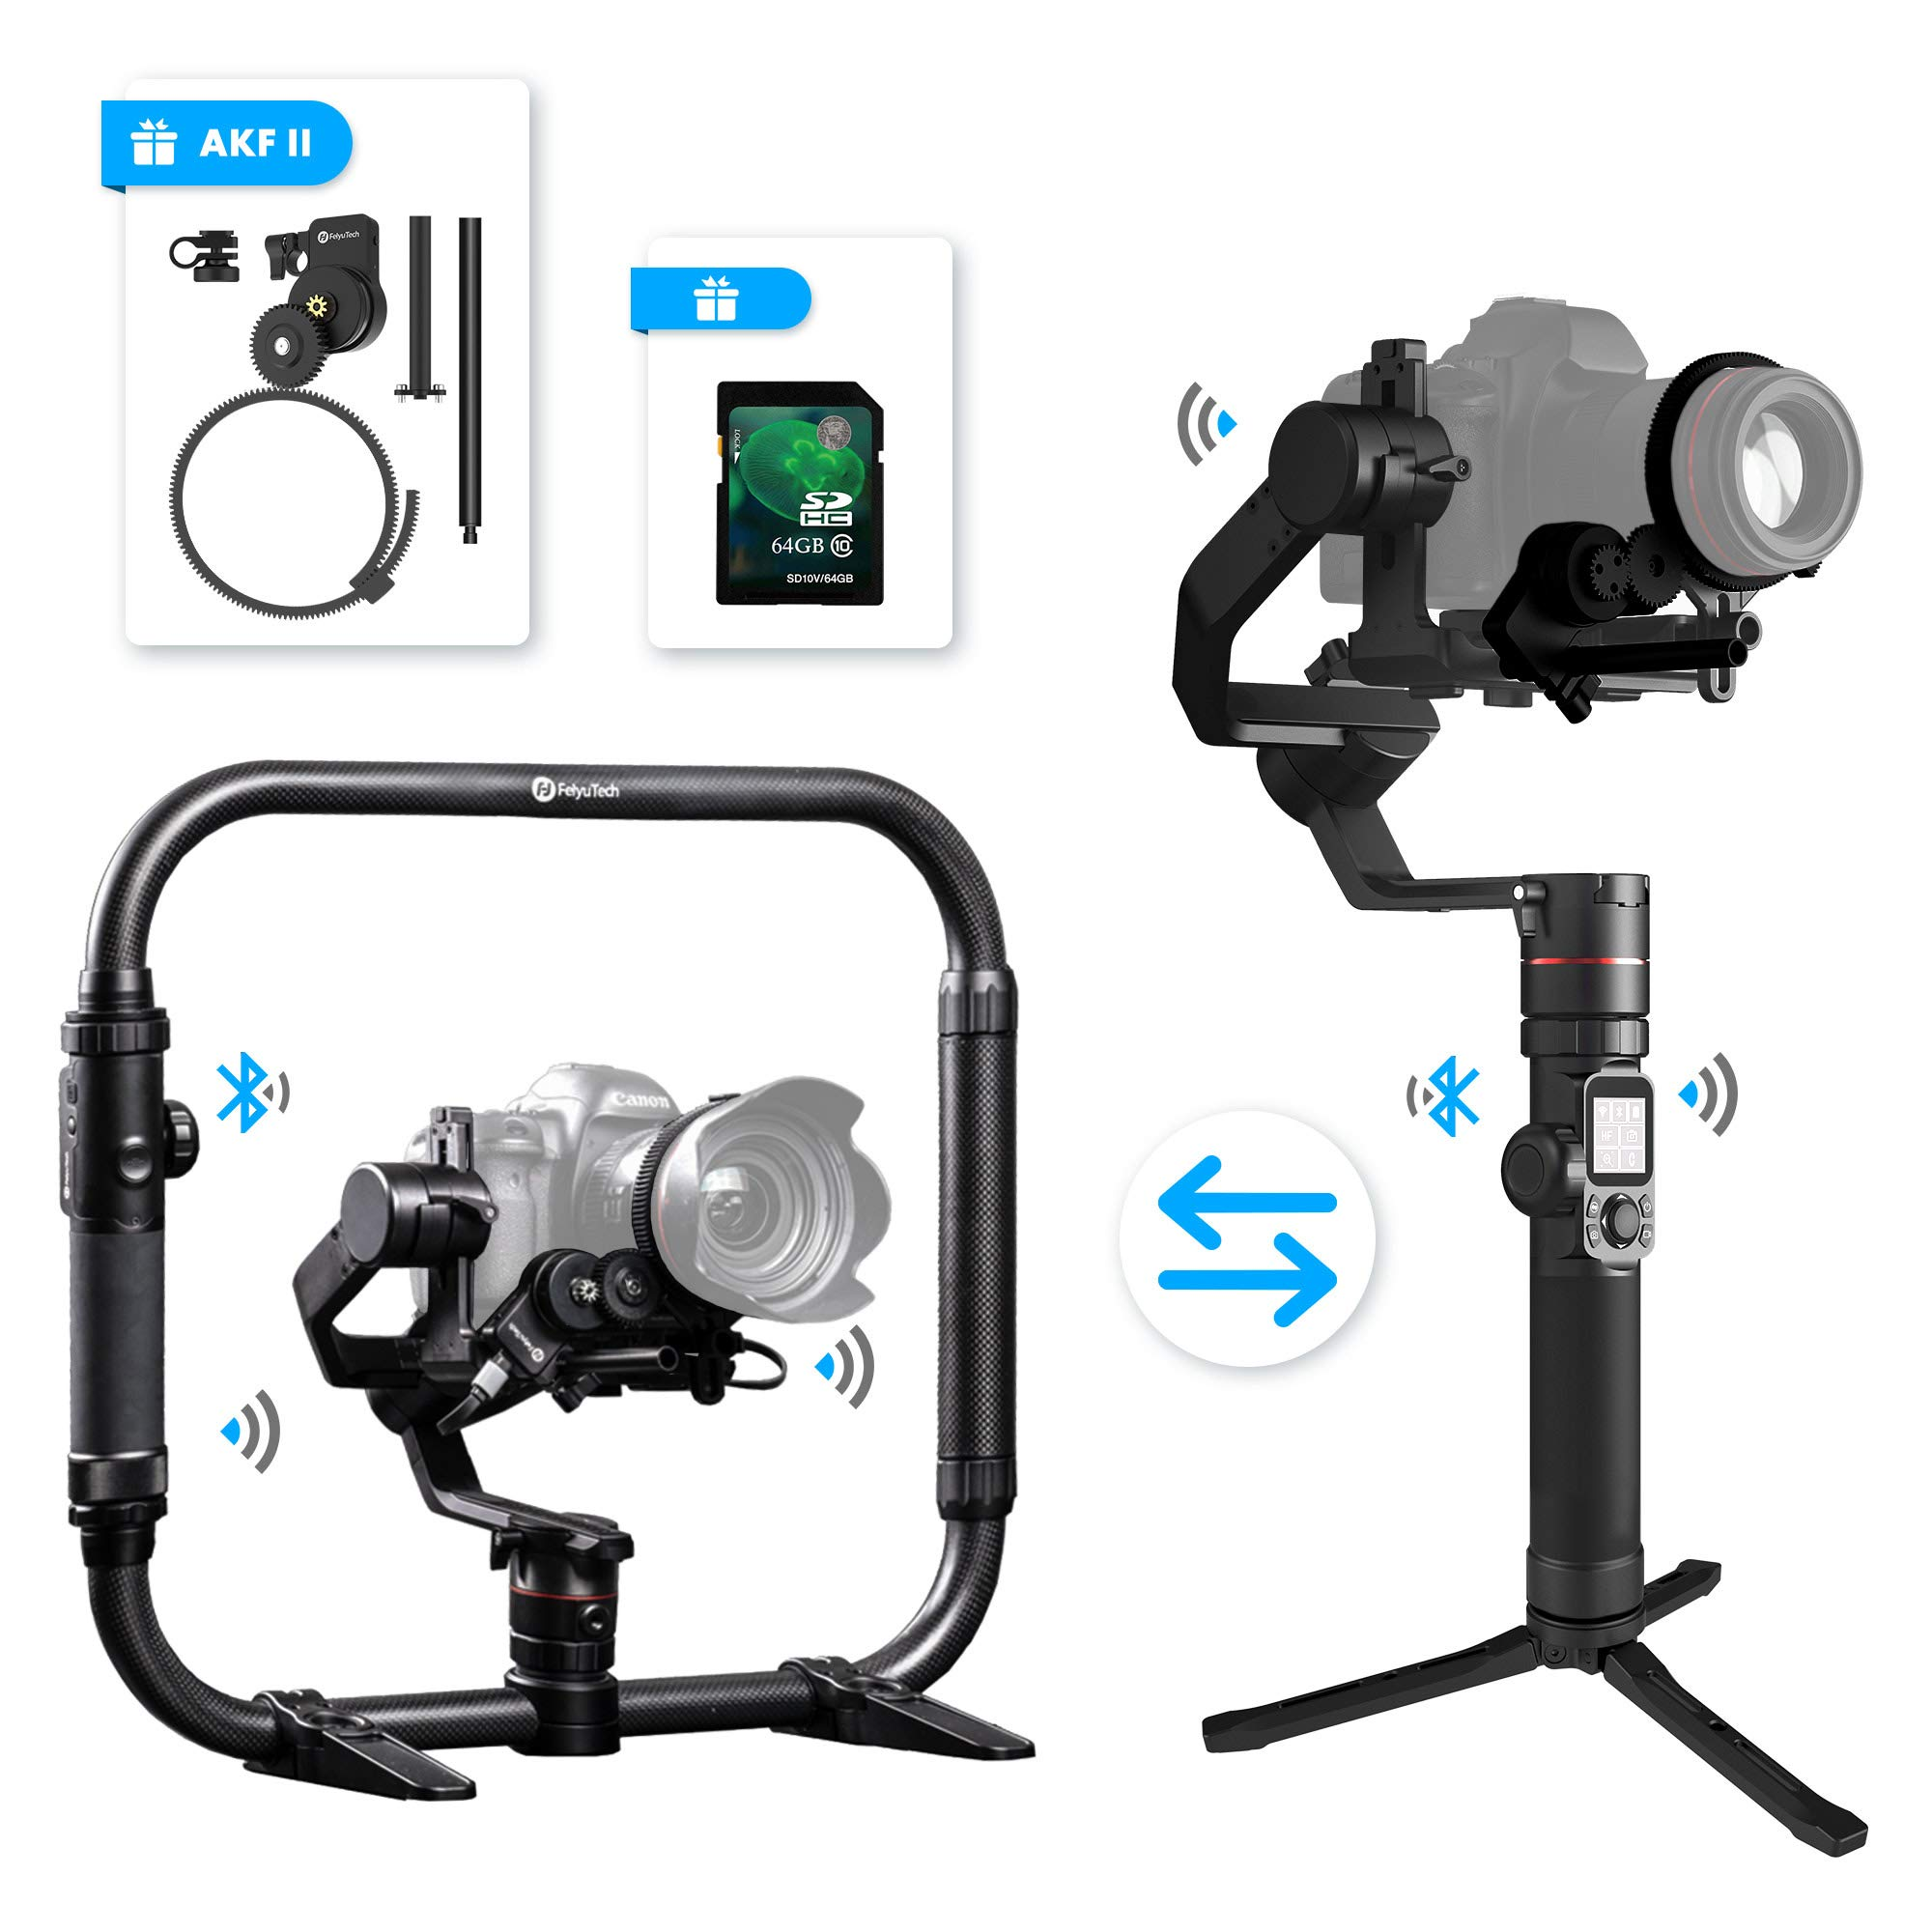 FeiyuTech Feiyu AK4000 3 Axis DSLR Gimbal Stabilizer, Dual Handheld KIT, w/Ring-Style Grip Handle and Follow Focus II, 8.8 lbs Max Load, Compatible with Canon EOS Series, Nikon & Sony Series DSLR Came by FeiyuTech